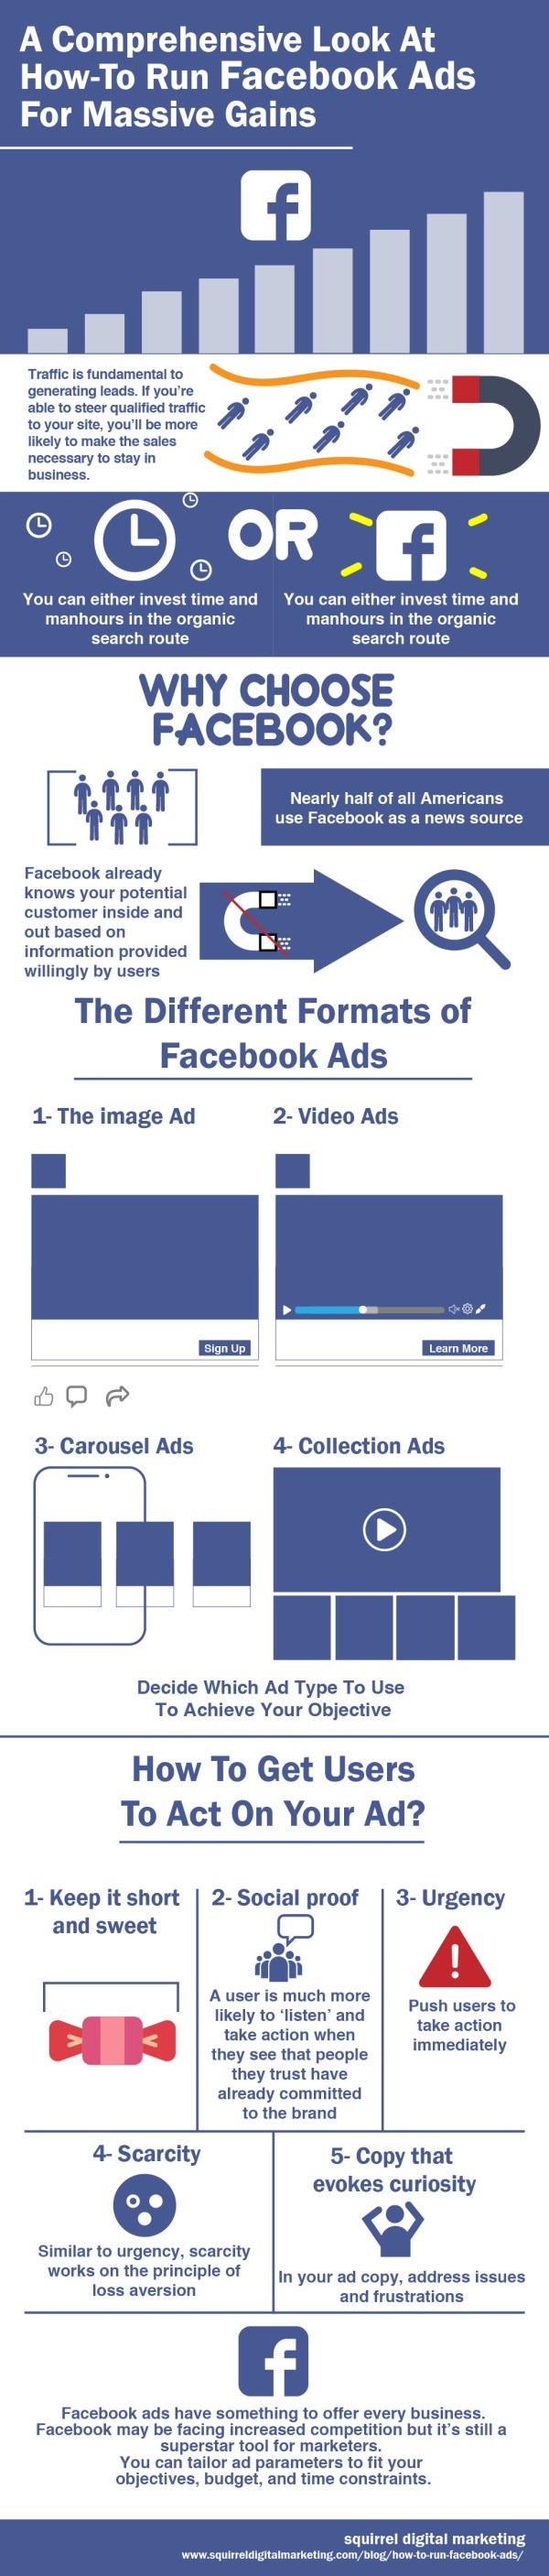 Infographic__How_to_run_Facebook_ads